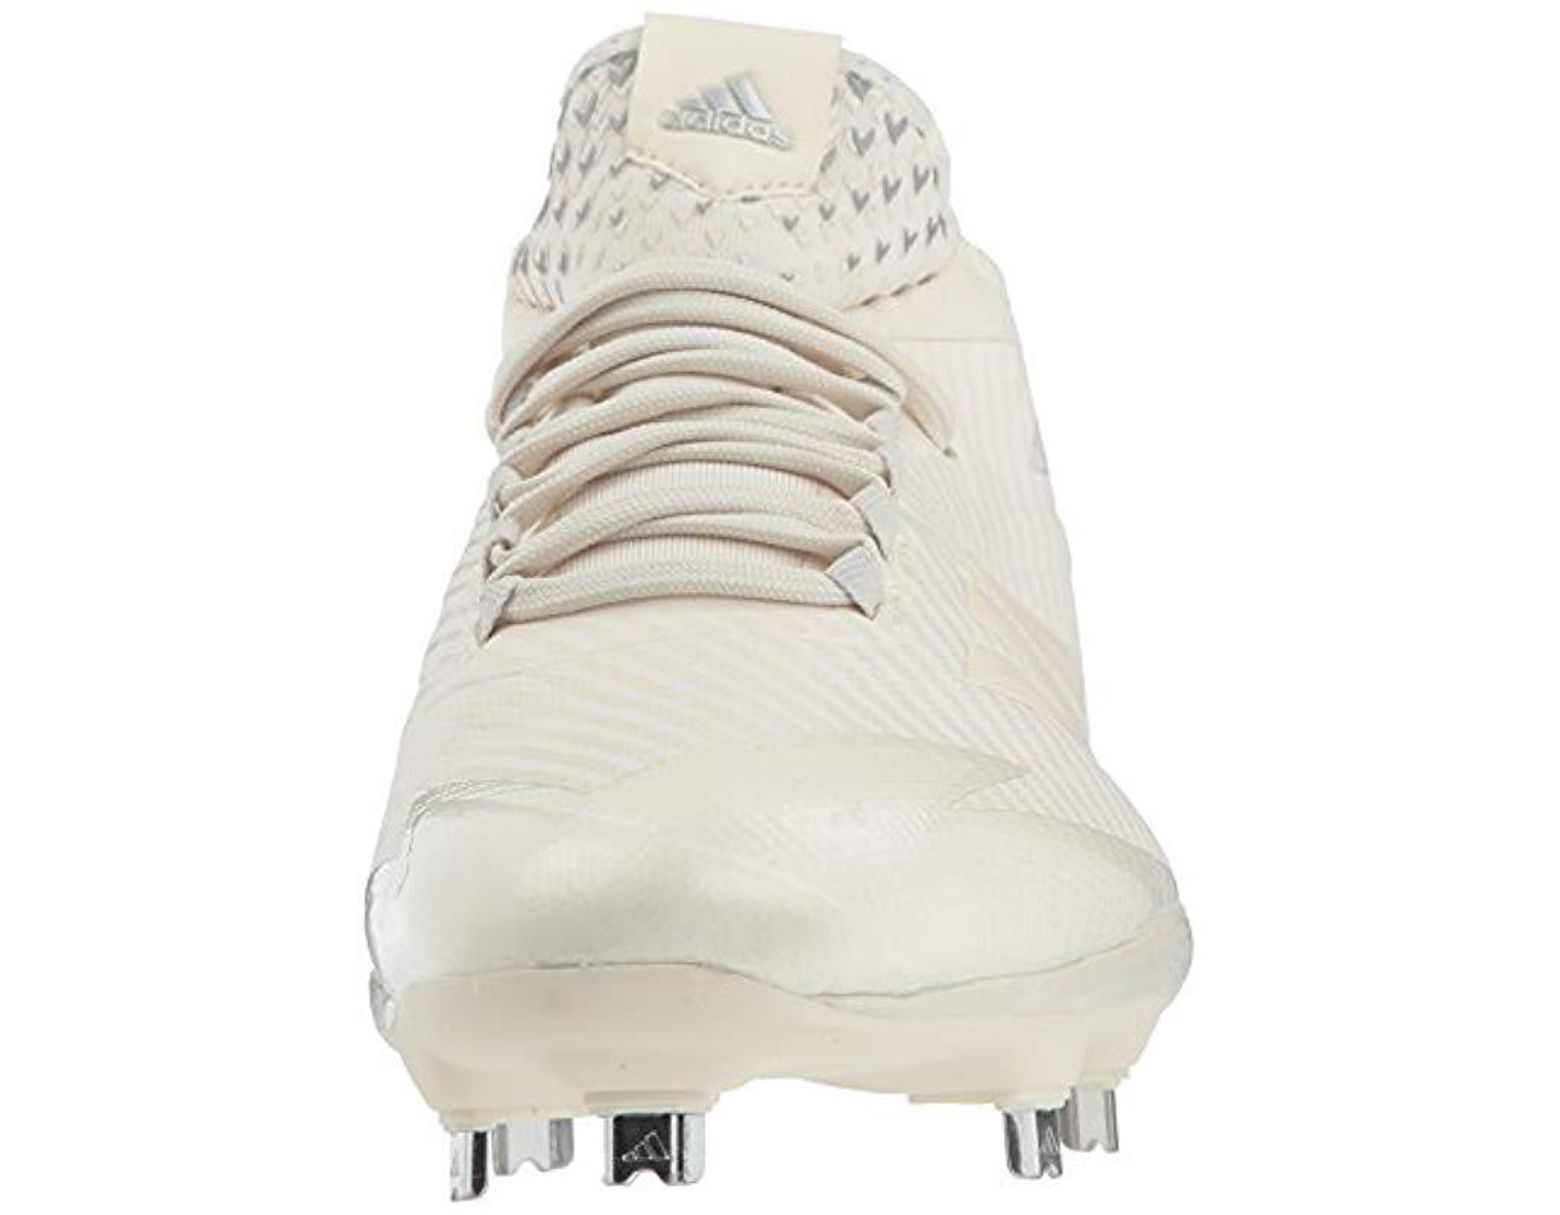 8c2bd9ee2294 adidas Performance Adizero Afterburner 4 in White for Men - Save 21% - Lyst